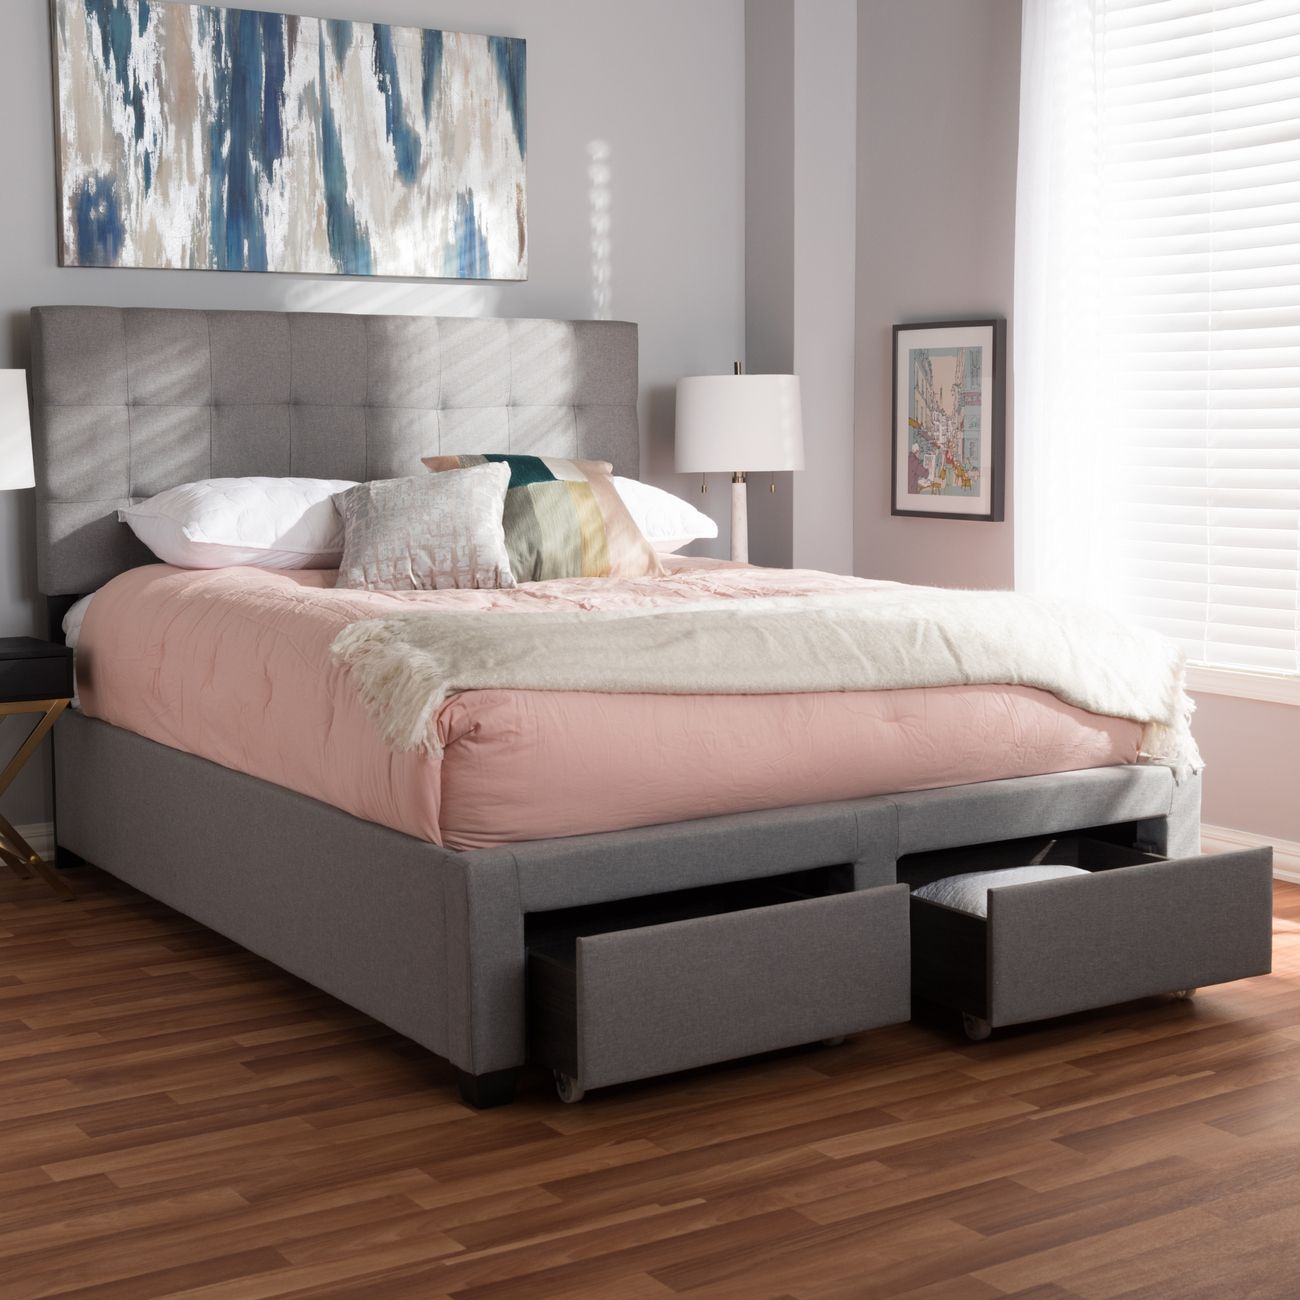 Baxton Studio Tibault Modern Contemporary Grey Fabric Upholstered Queen Size Storage Bed Wa8028 Gray Queen